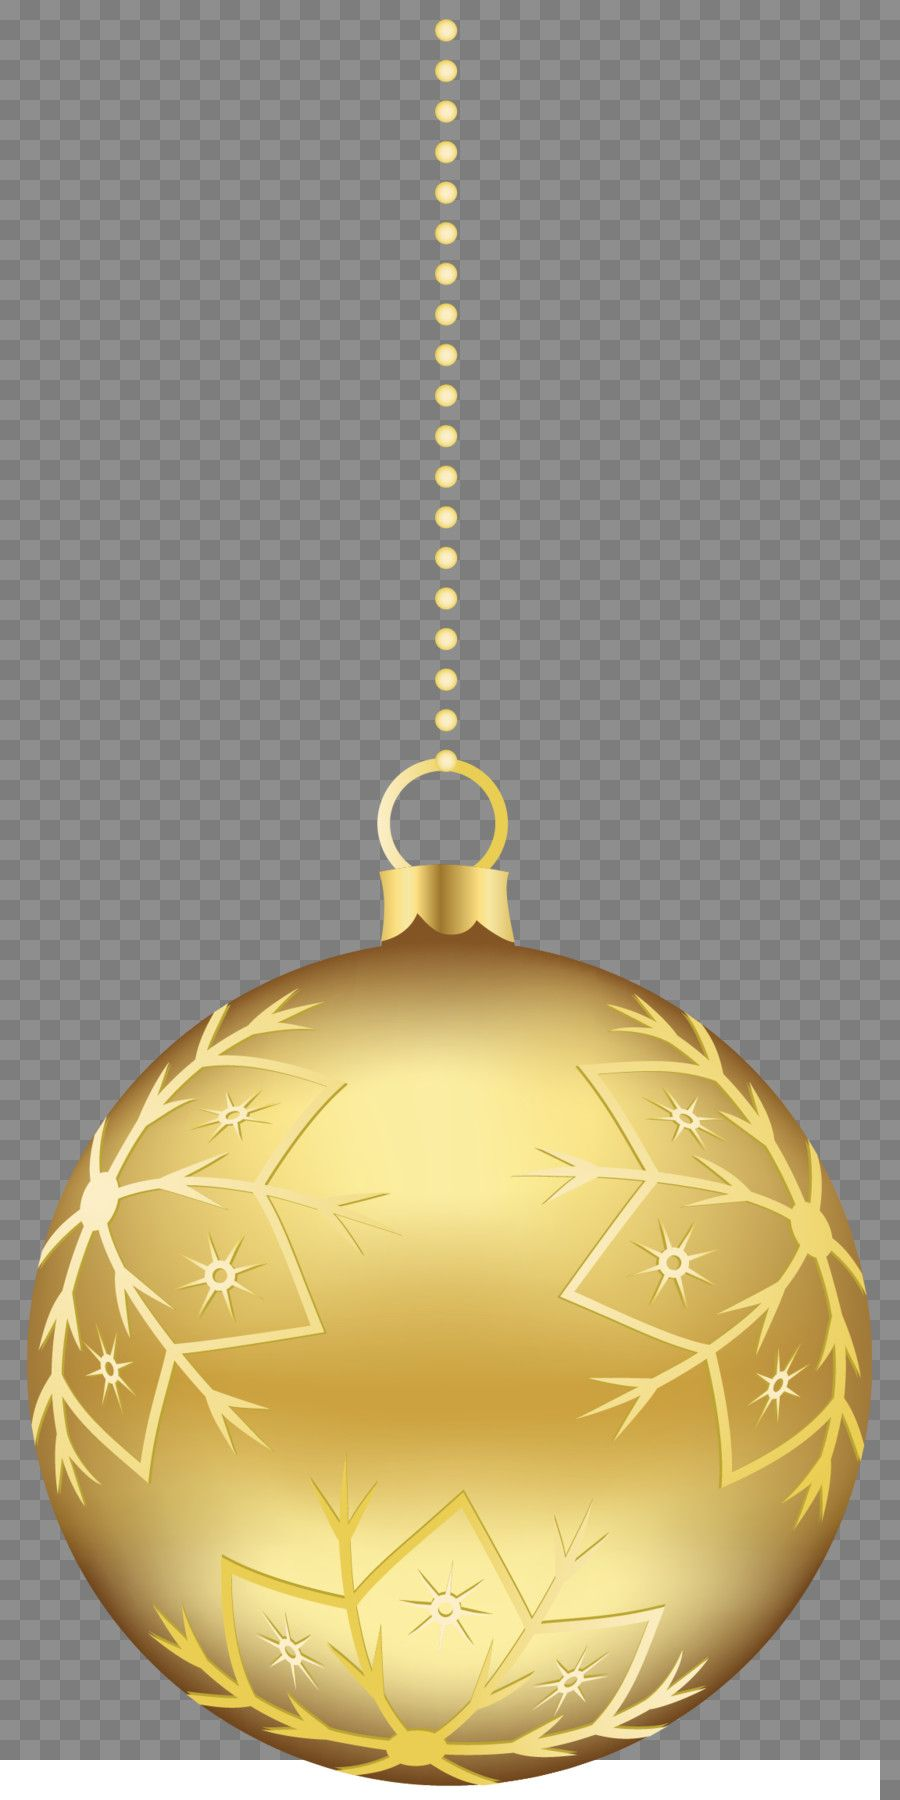 Christmas Golden Balls Ornaments Png Picture Png 927 2461 Christmas Cutouts Ornaments Ball Ornaments